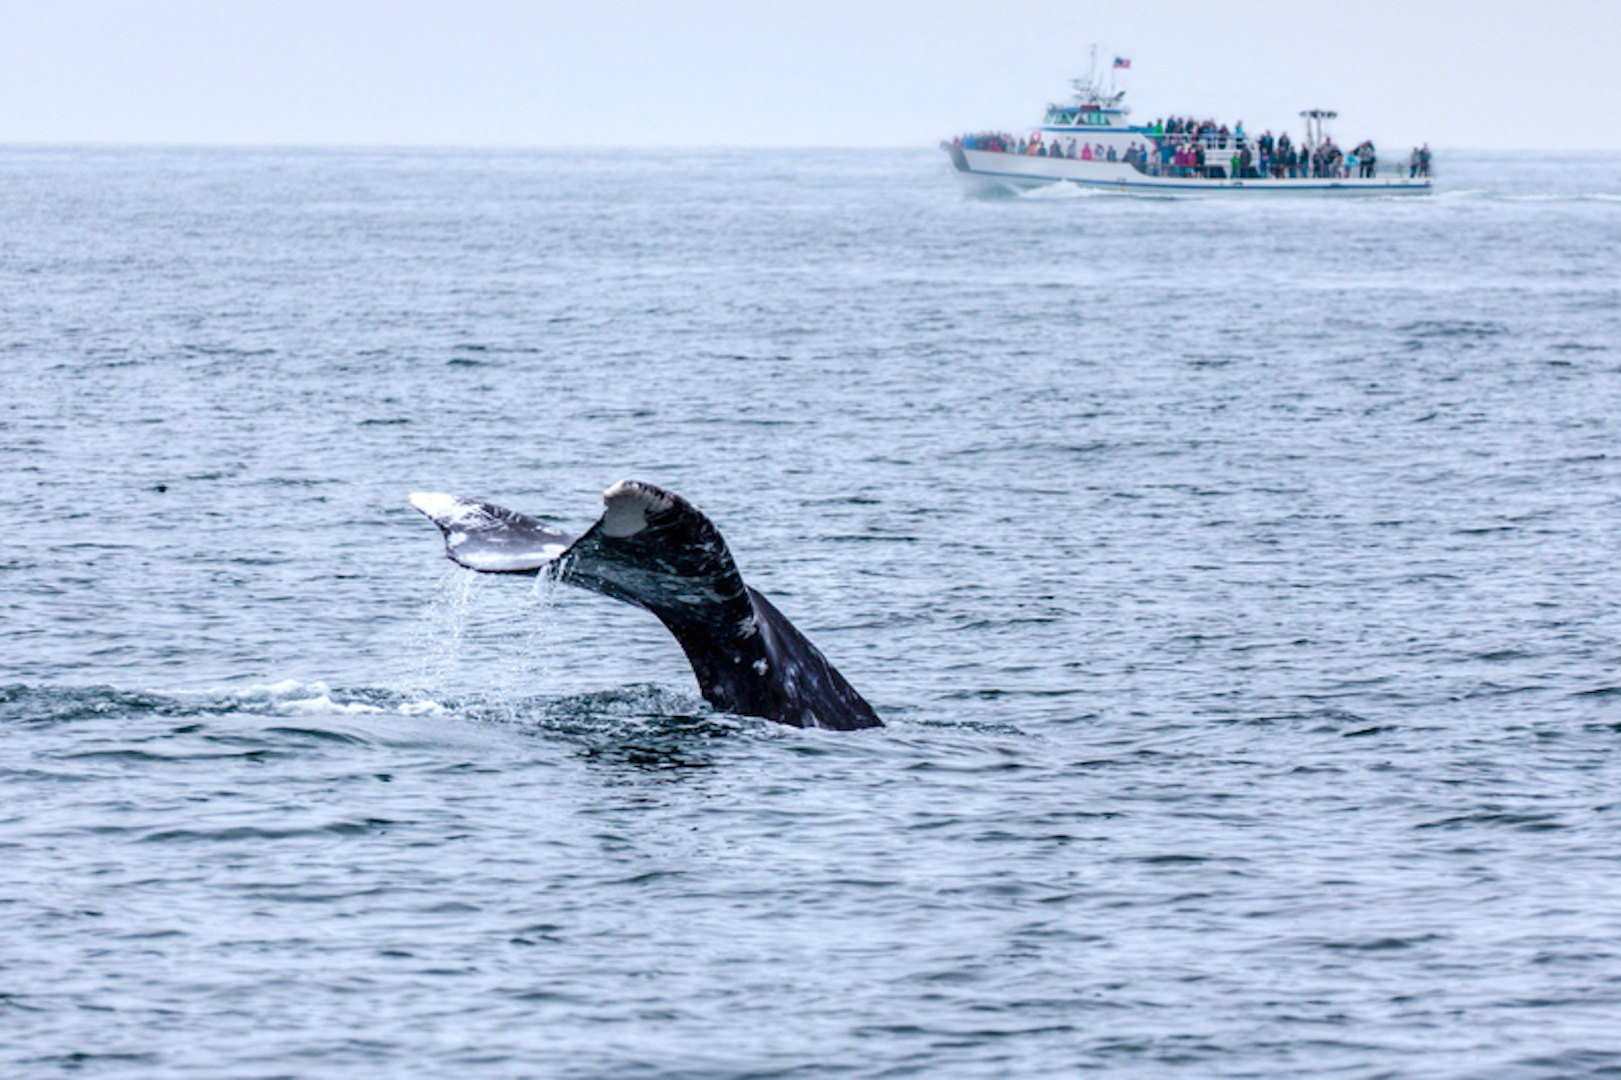 Whale Watching in Southern California © Ronniechua | Dreamstime.com